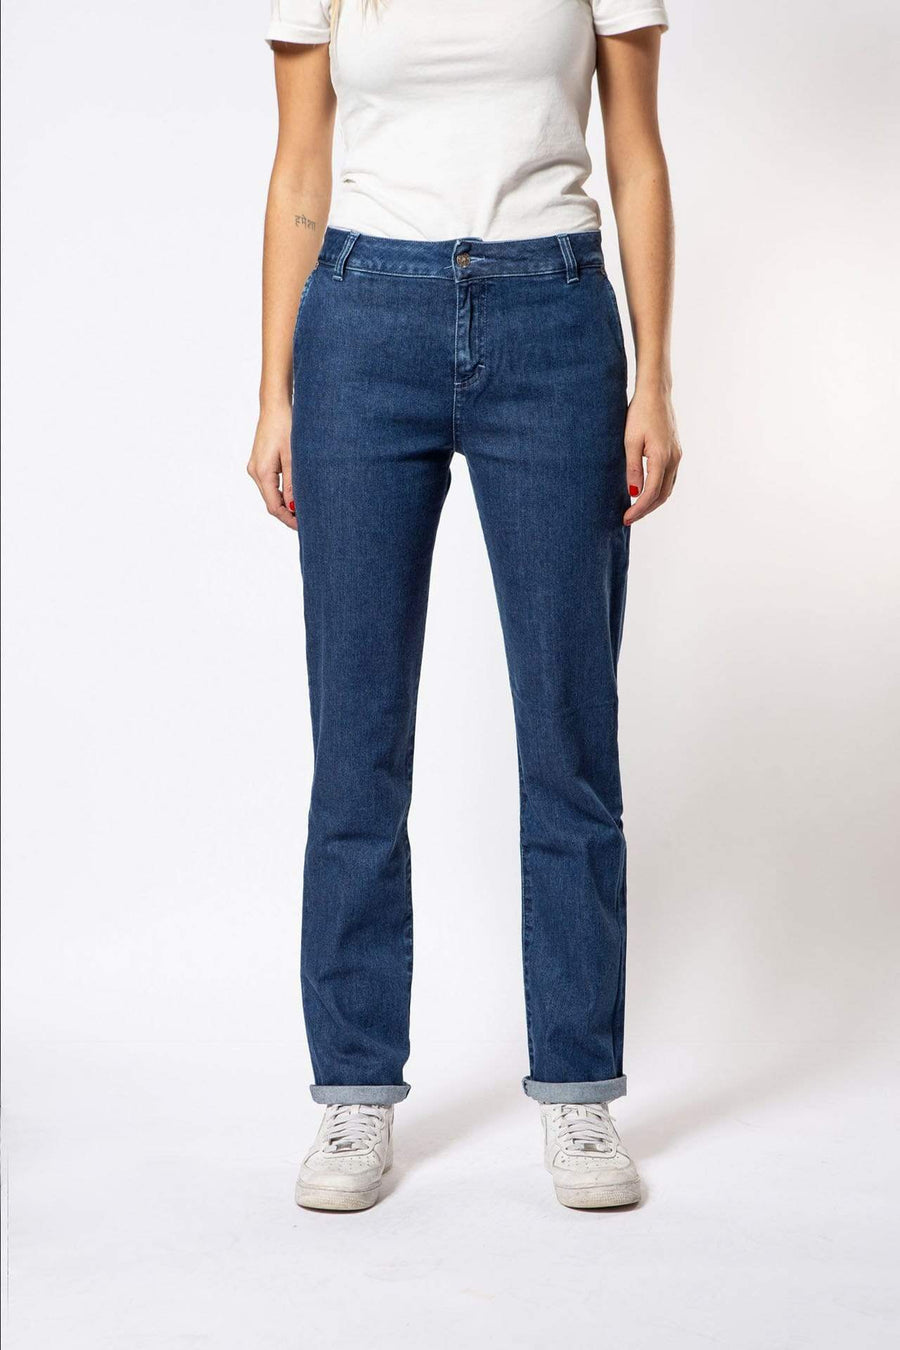 Par.co DENIM Woman Fior di Loto Straight Jeans sustainable fashion ethical fashion